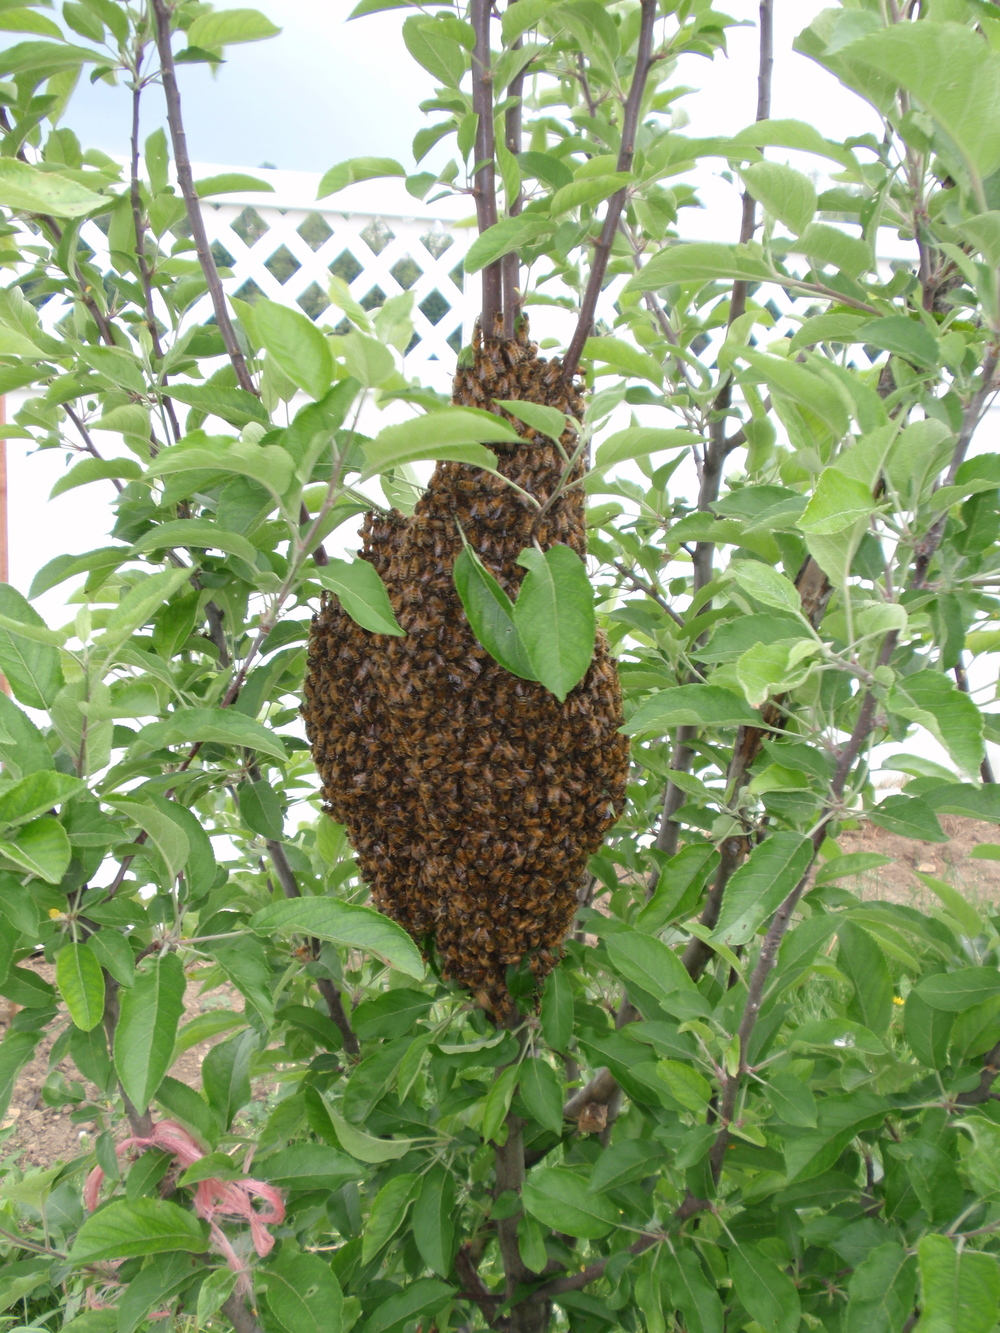 This IS a honey bees swarm - notice the absence of a covering! A honey bee swarm is temporary and can stay in one spot for a few hours to several days.